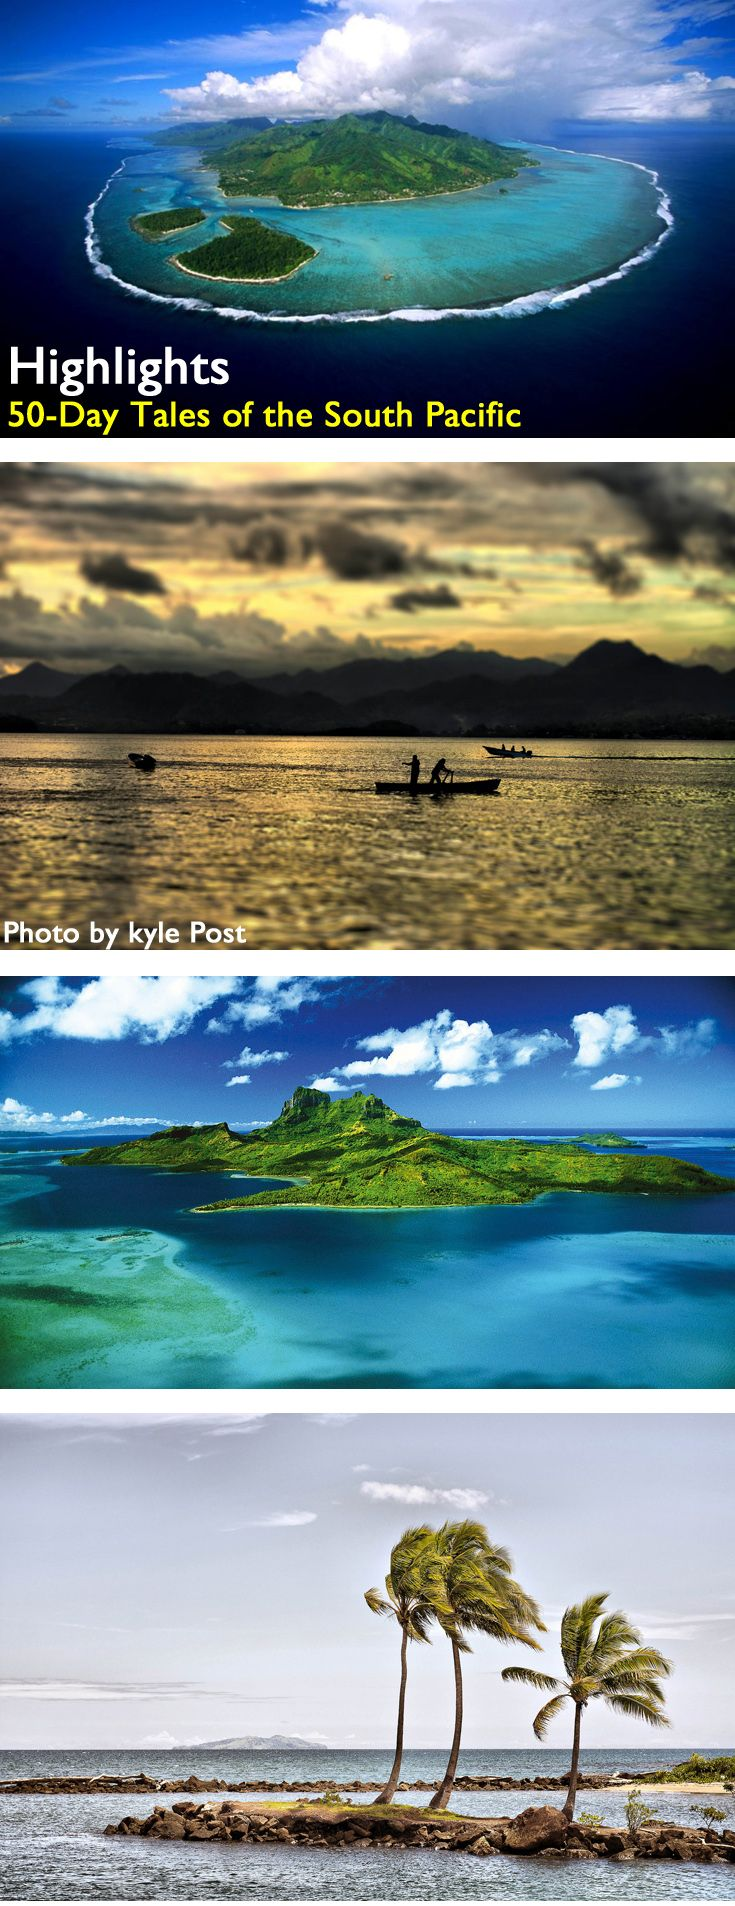 50-Day Tales of the South Pacific Voyage Highlights.  http://cruisesource.us/2015/04/50-day-tales-of-south-pacific-voyage-highlights/